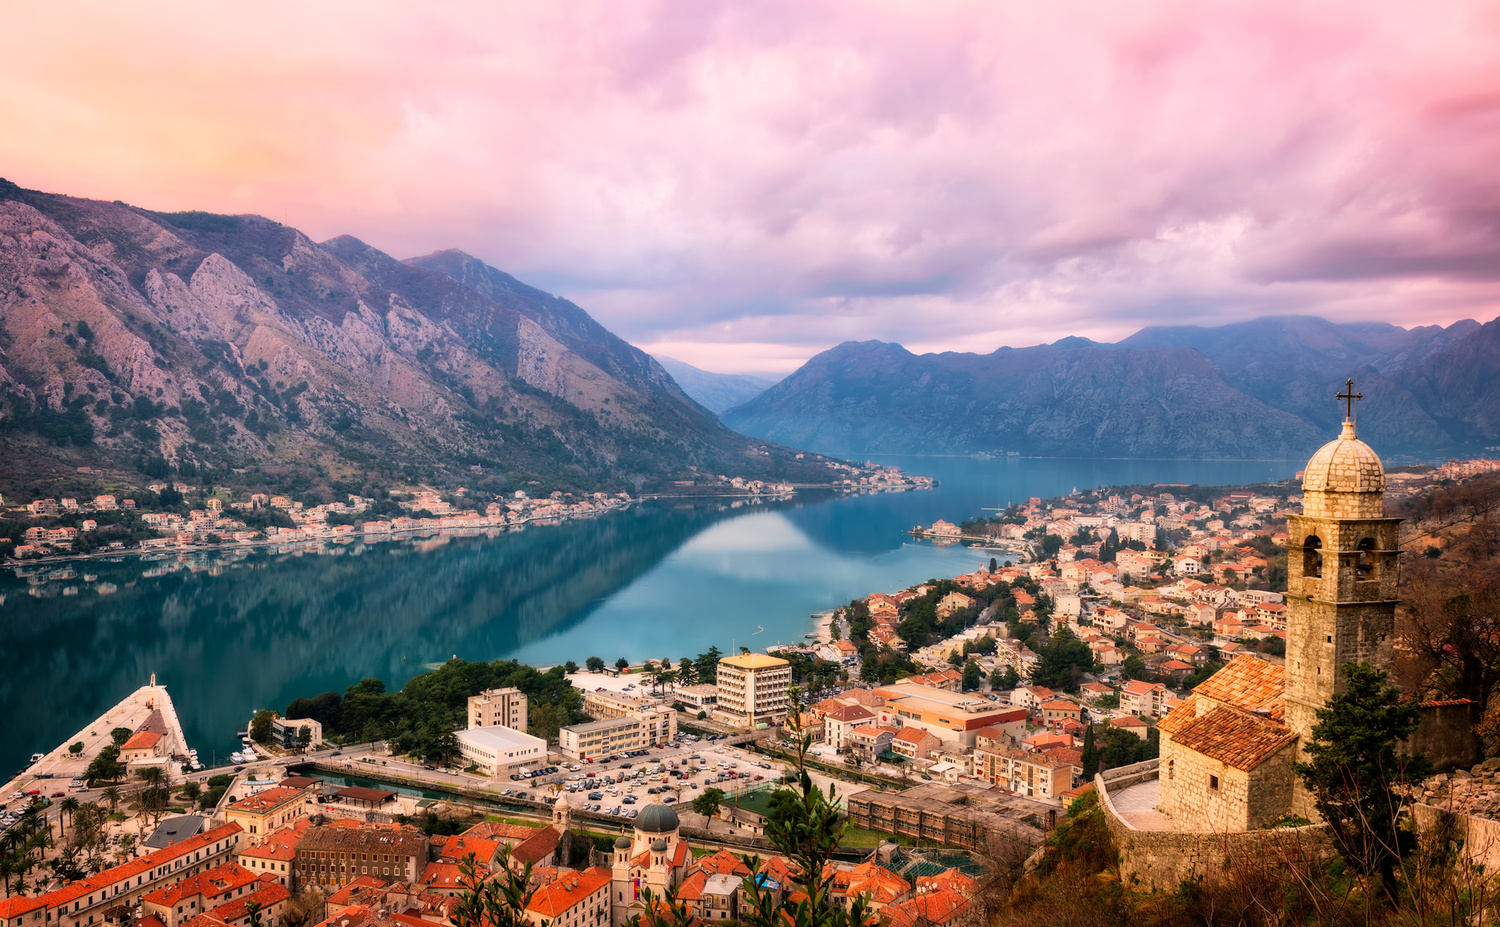 Bay of Kotor Sunset Panorama | Kotor, Montenegro by Nico Trinkhaus